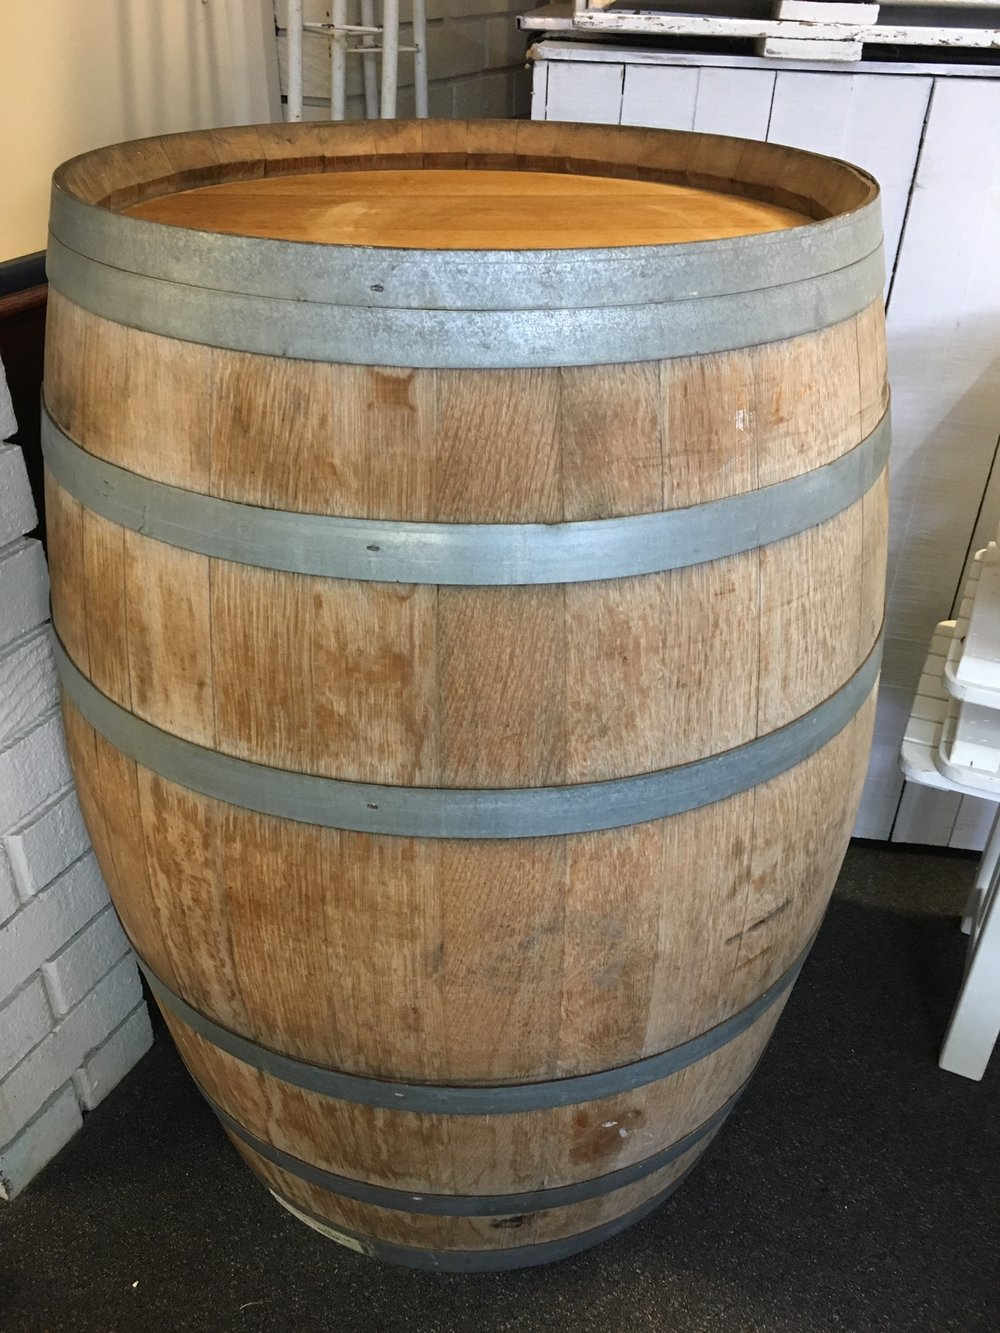 Wine Barrel - $50 to Hire